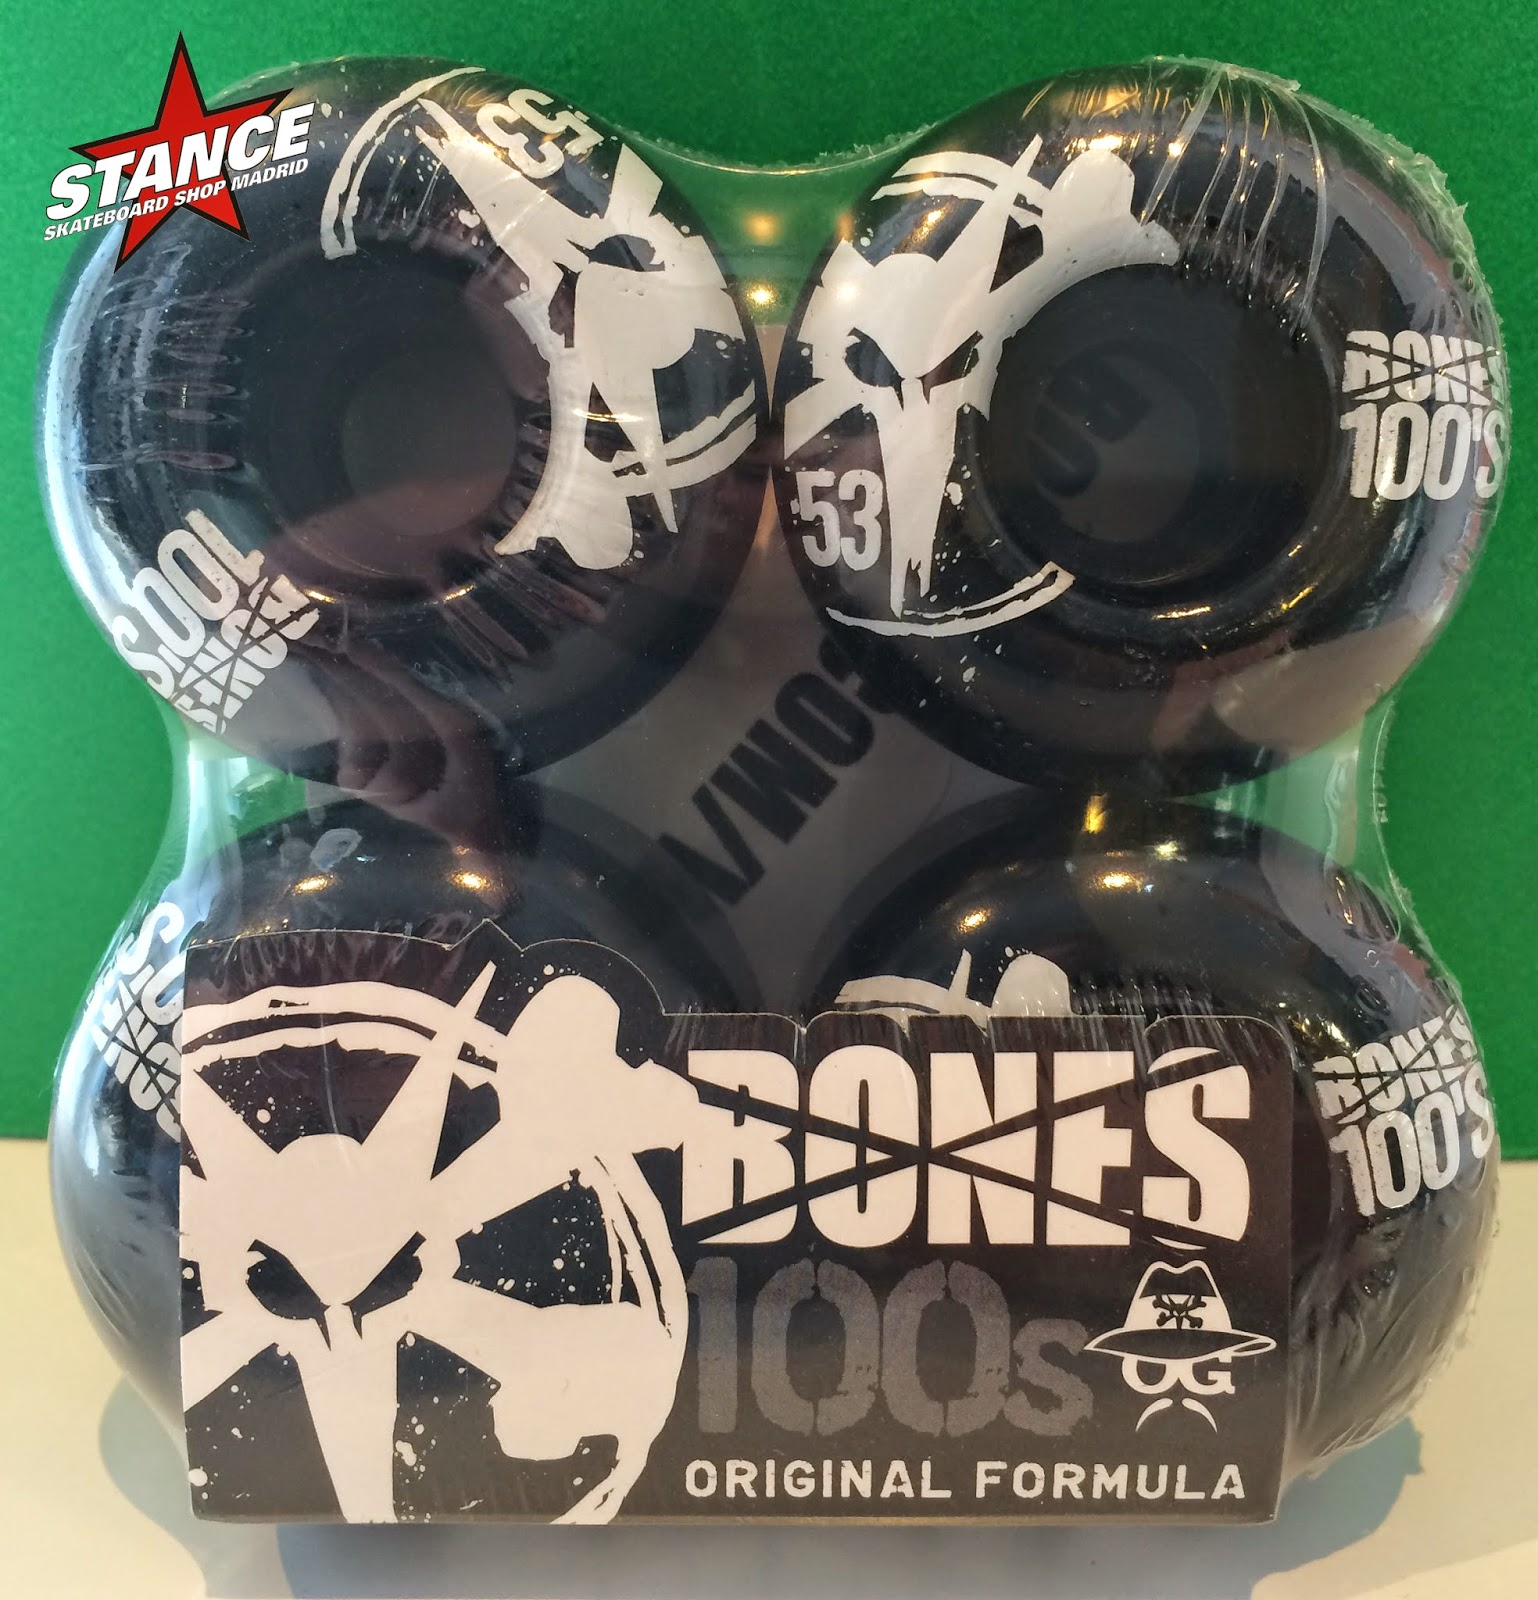 http://www.skateboard-stance.com/skate/ruedas/bones-wheels.html?p=5&limit=5&start=1&savestate=1